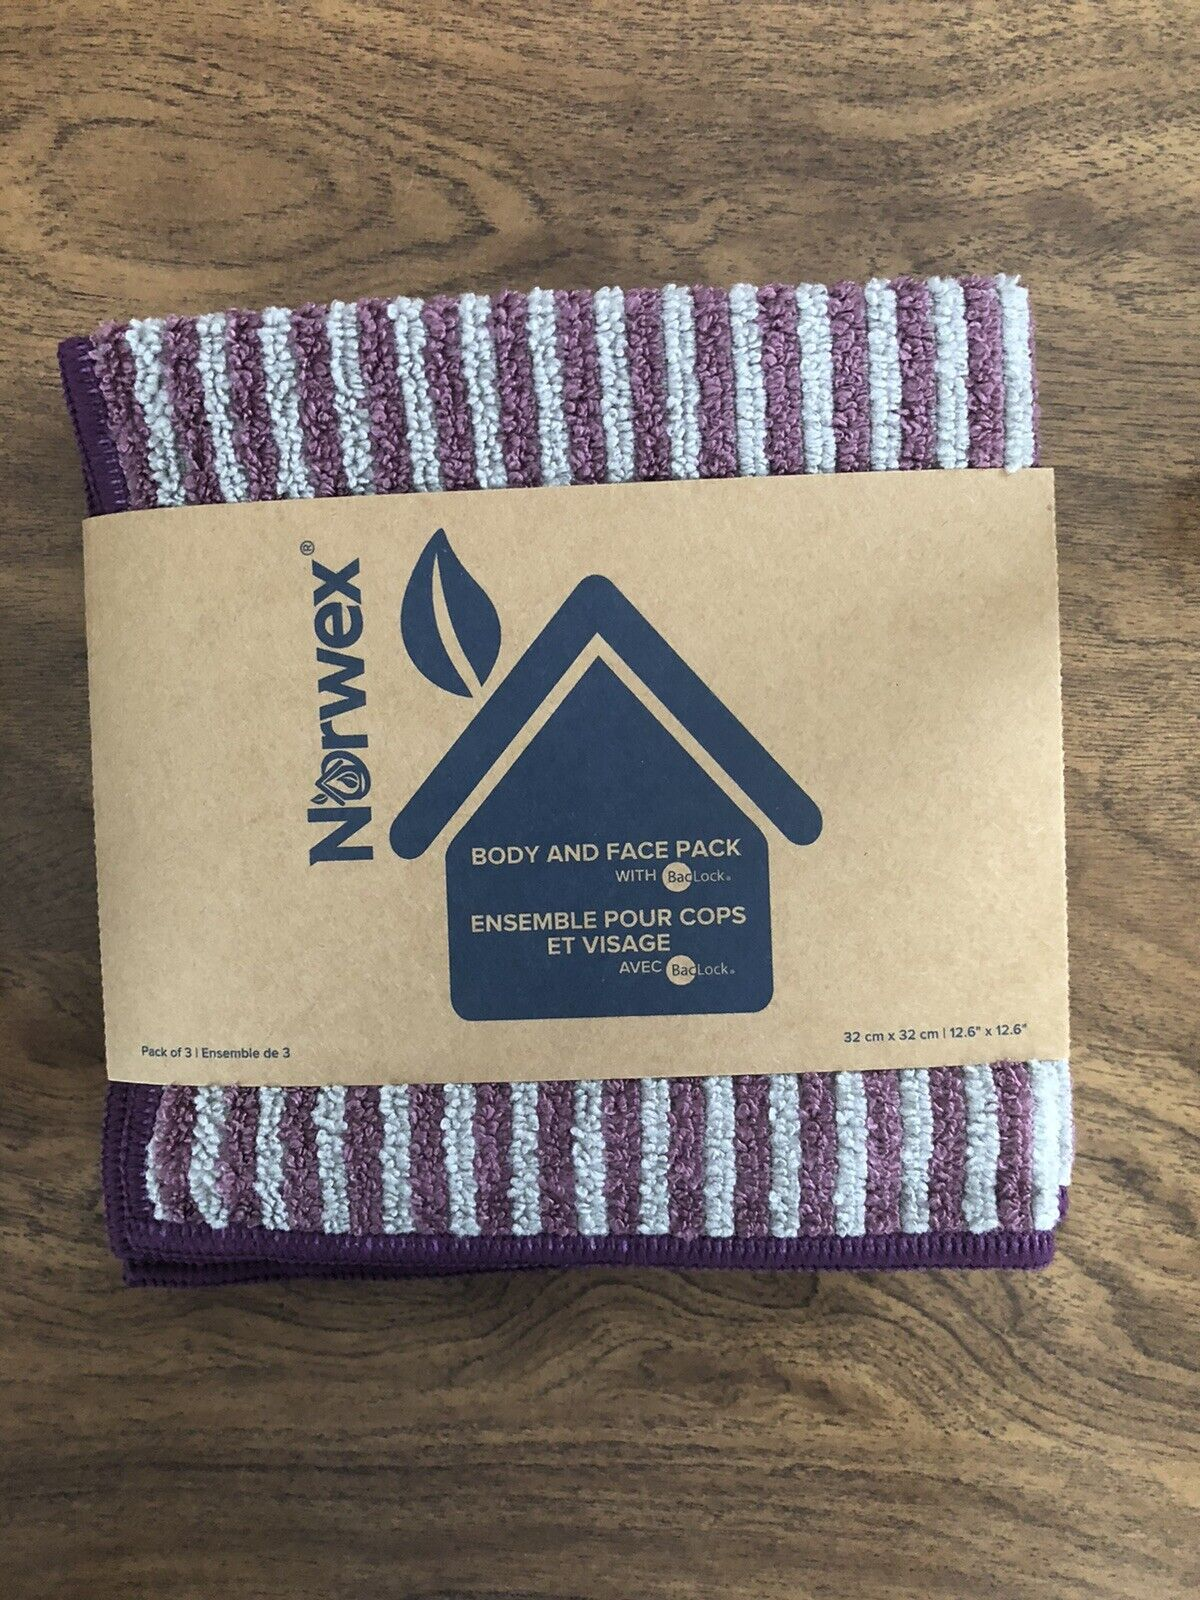 Norwex Body and Face Cloth 3-Pack BacLock Limited Edition Lavender/Graphite New